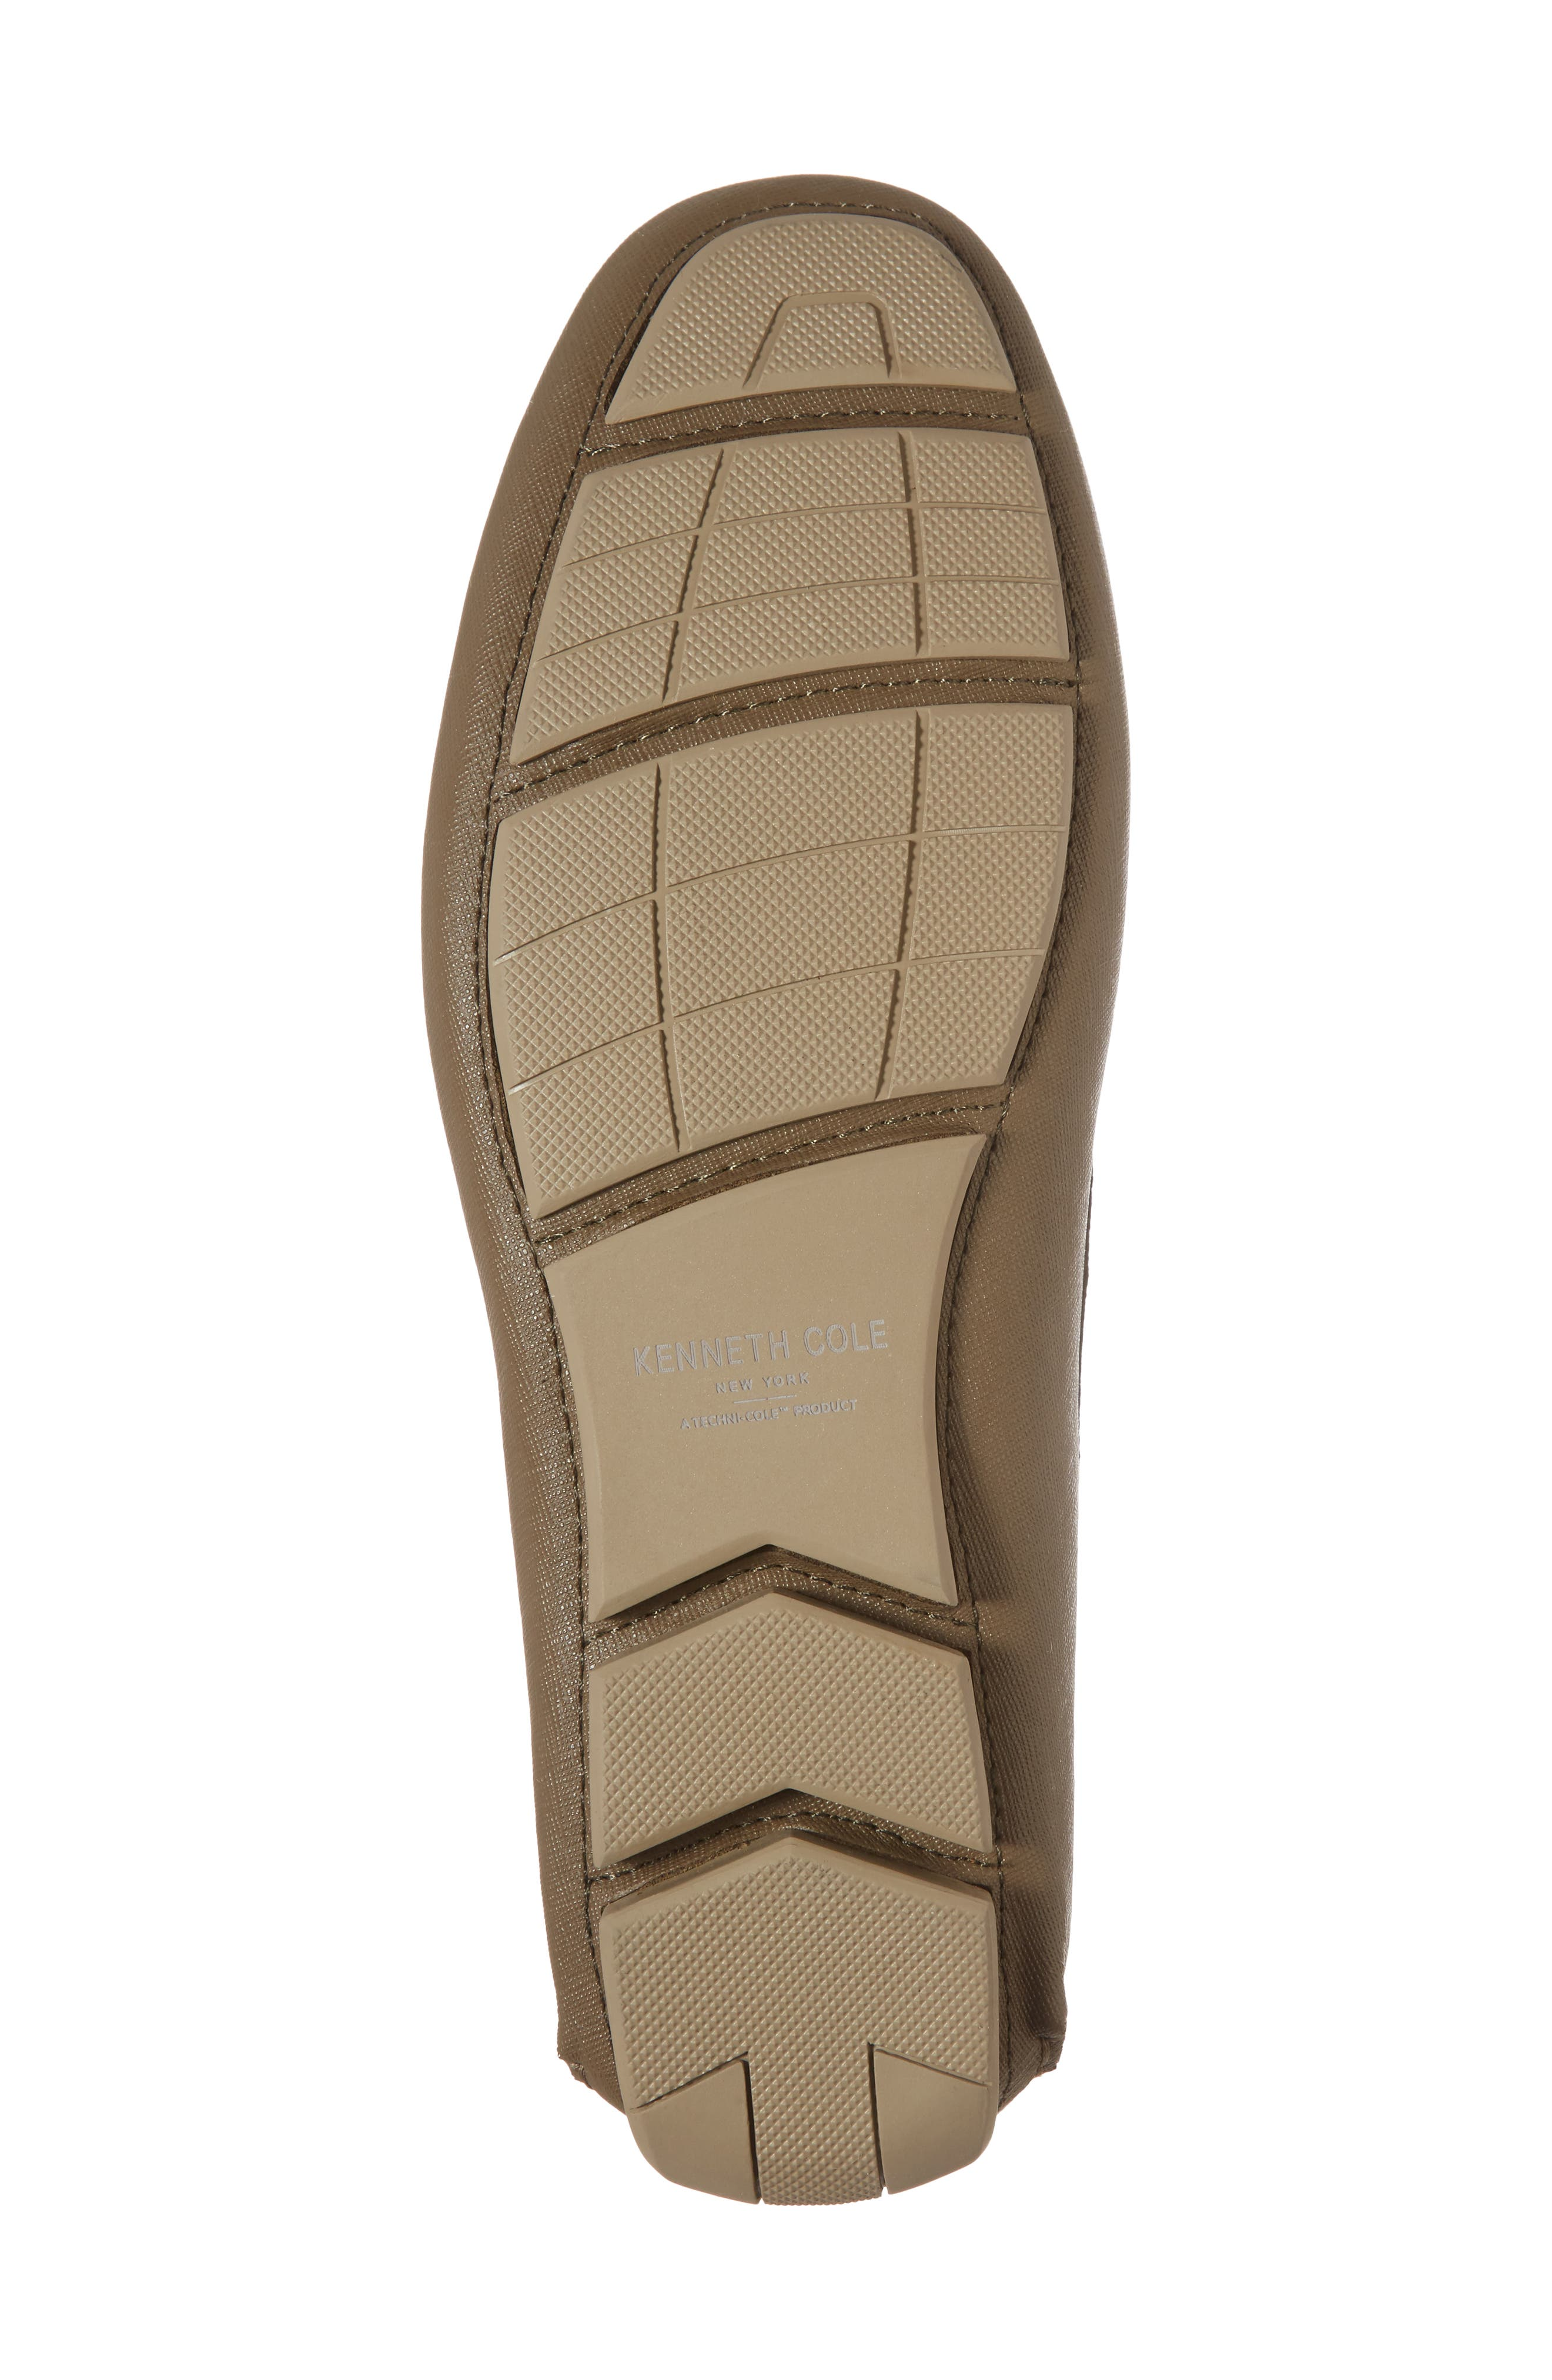 Theme Song Driving Shoe,                             Alternate thumbnail 6, color,                             Taupe Leather